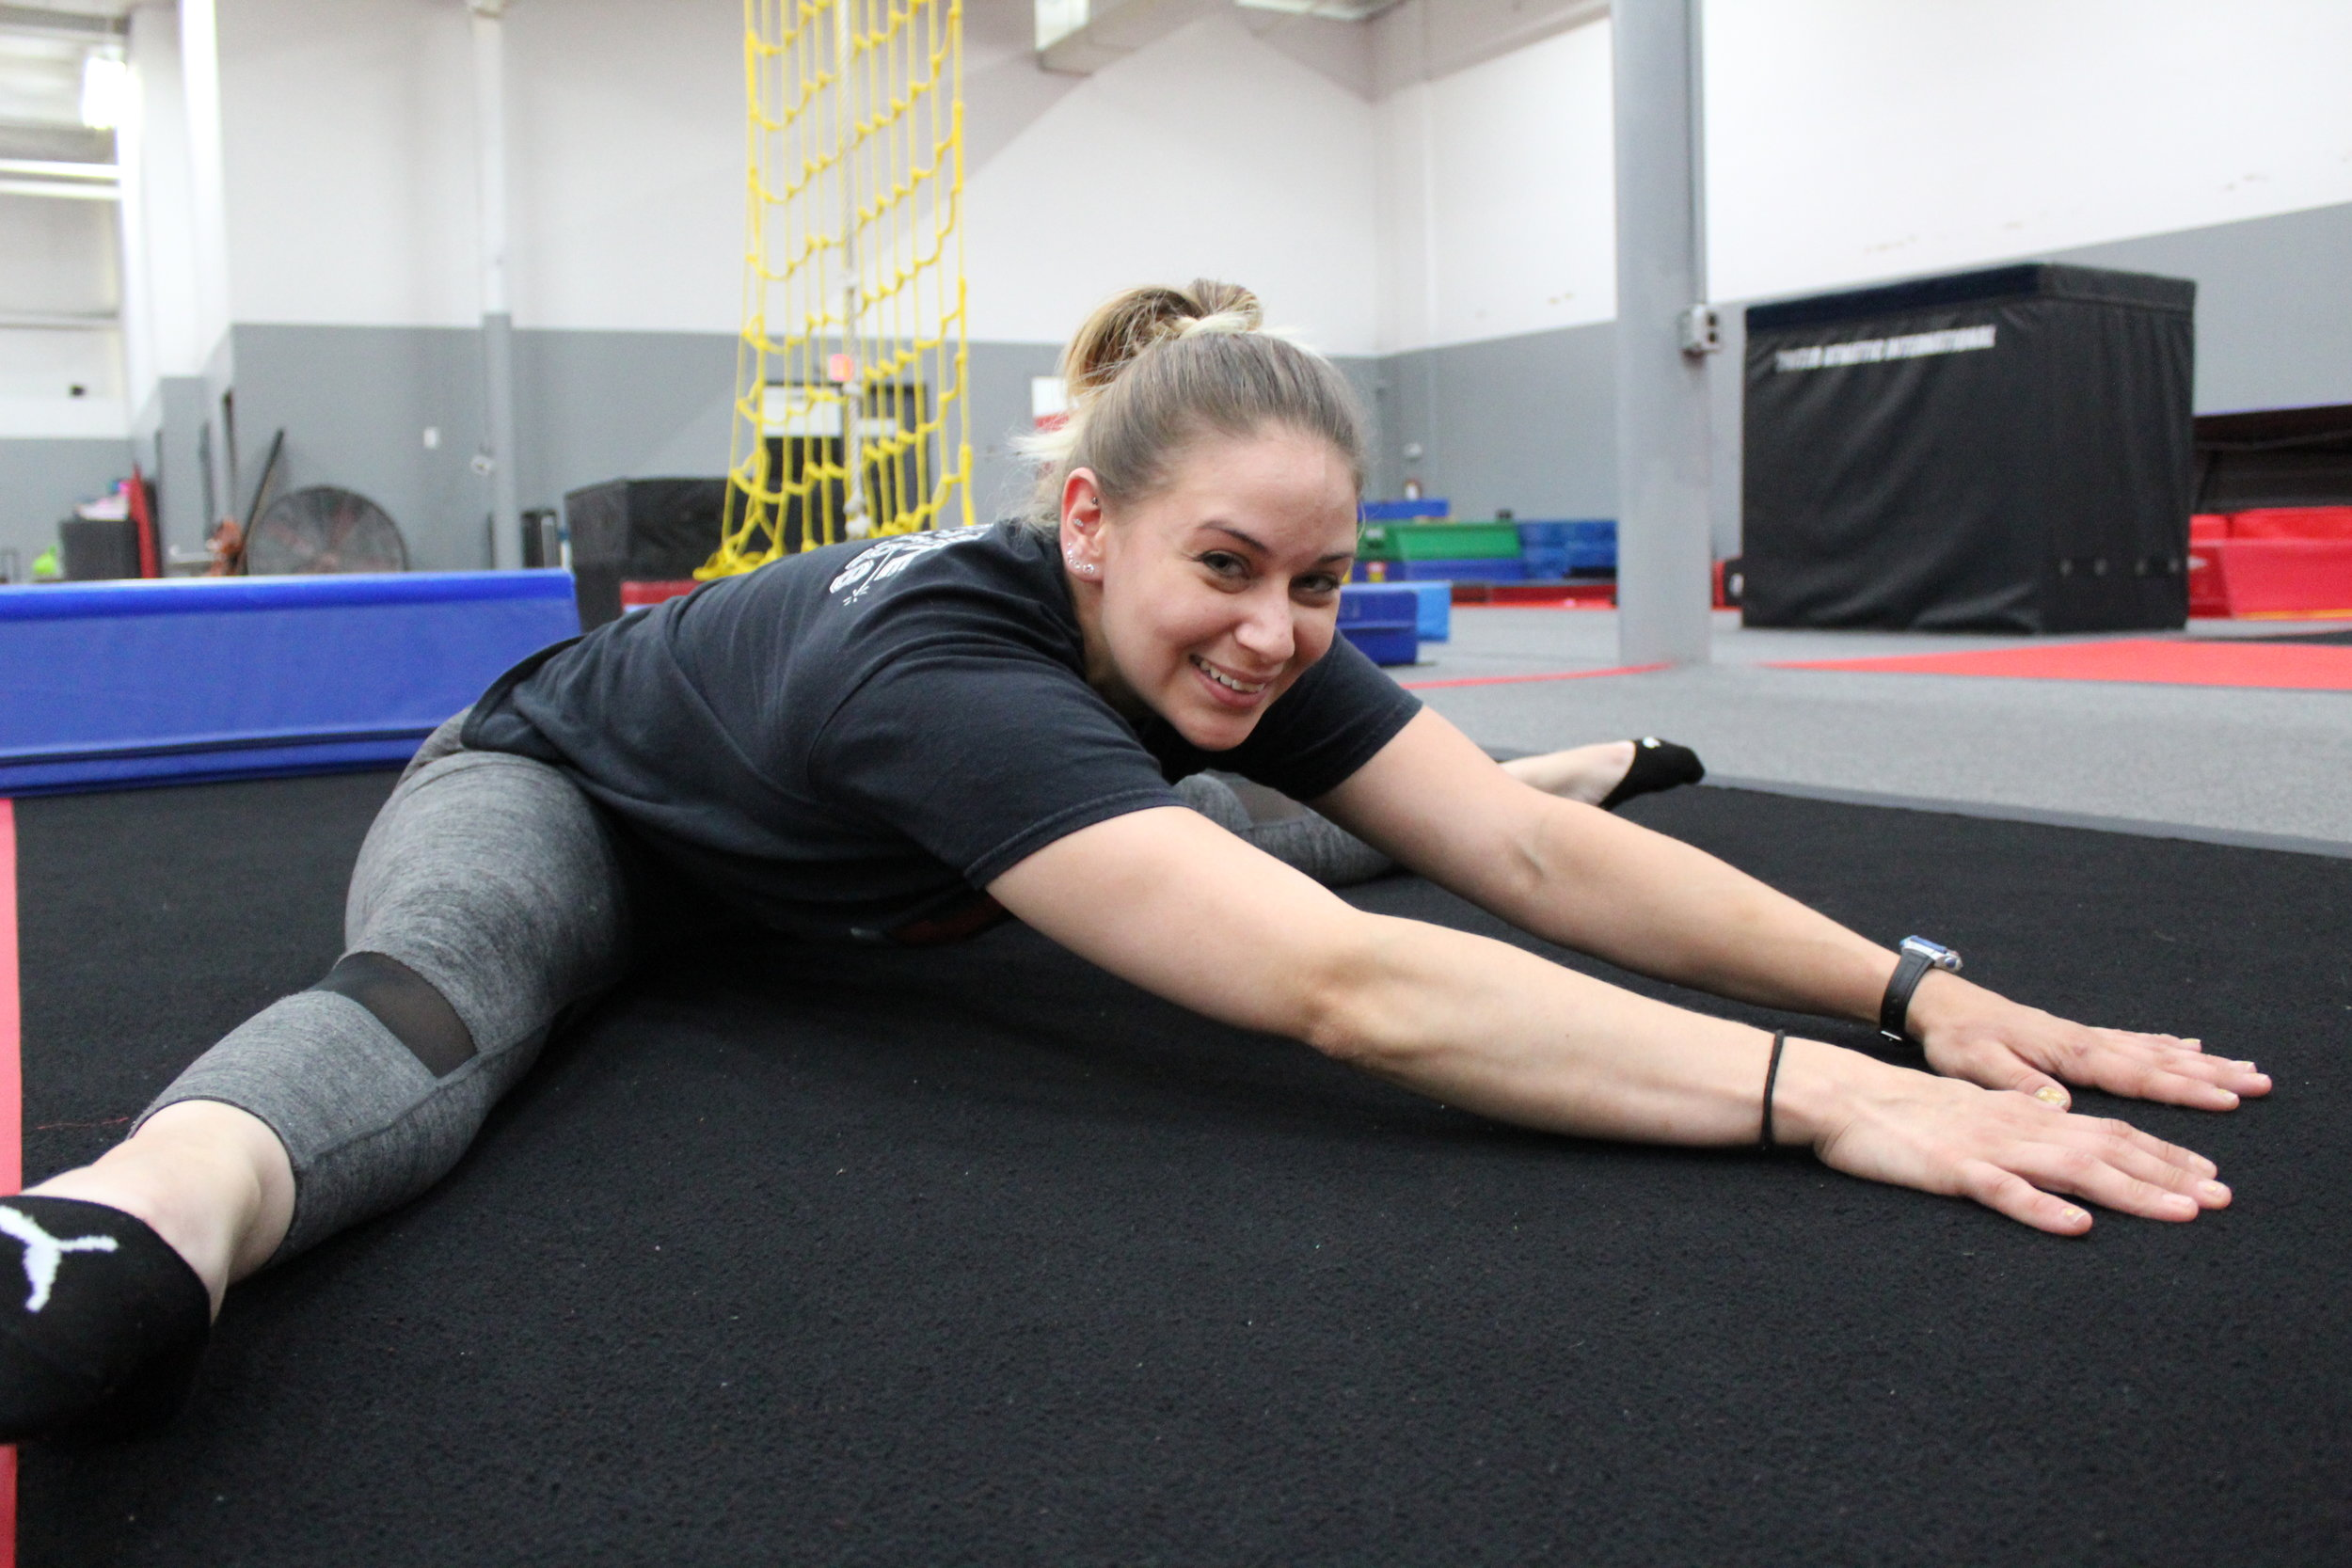 Liz Bofill, Artistic Gymnastics and Power Tumbling